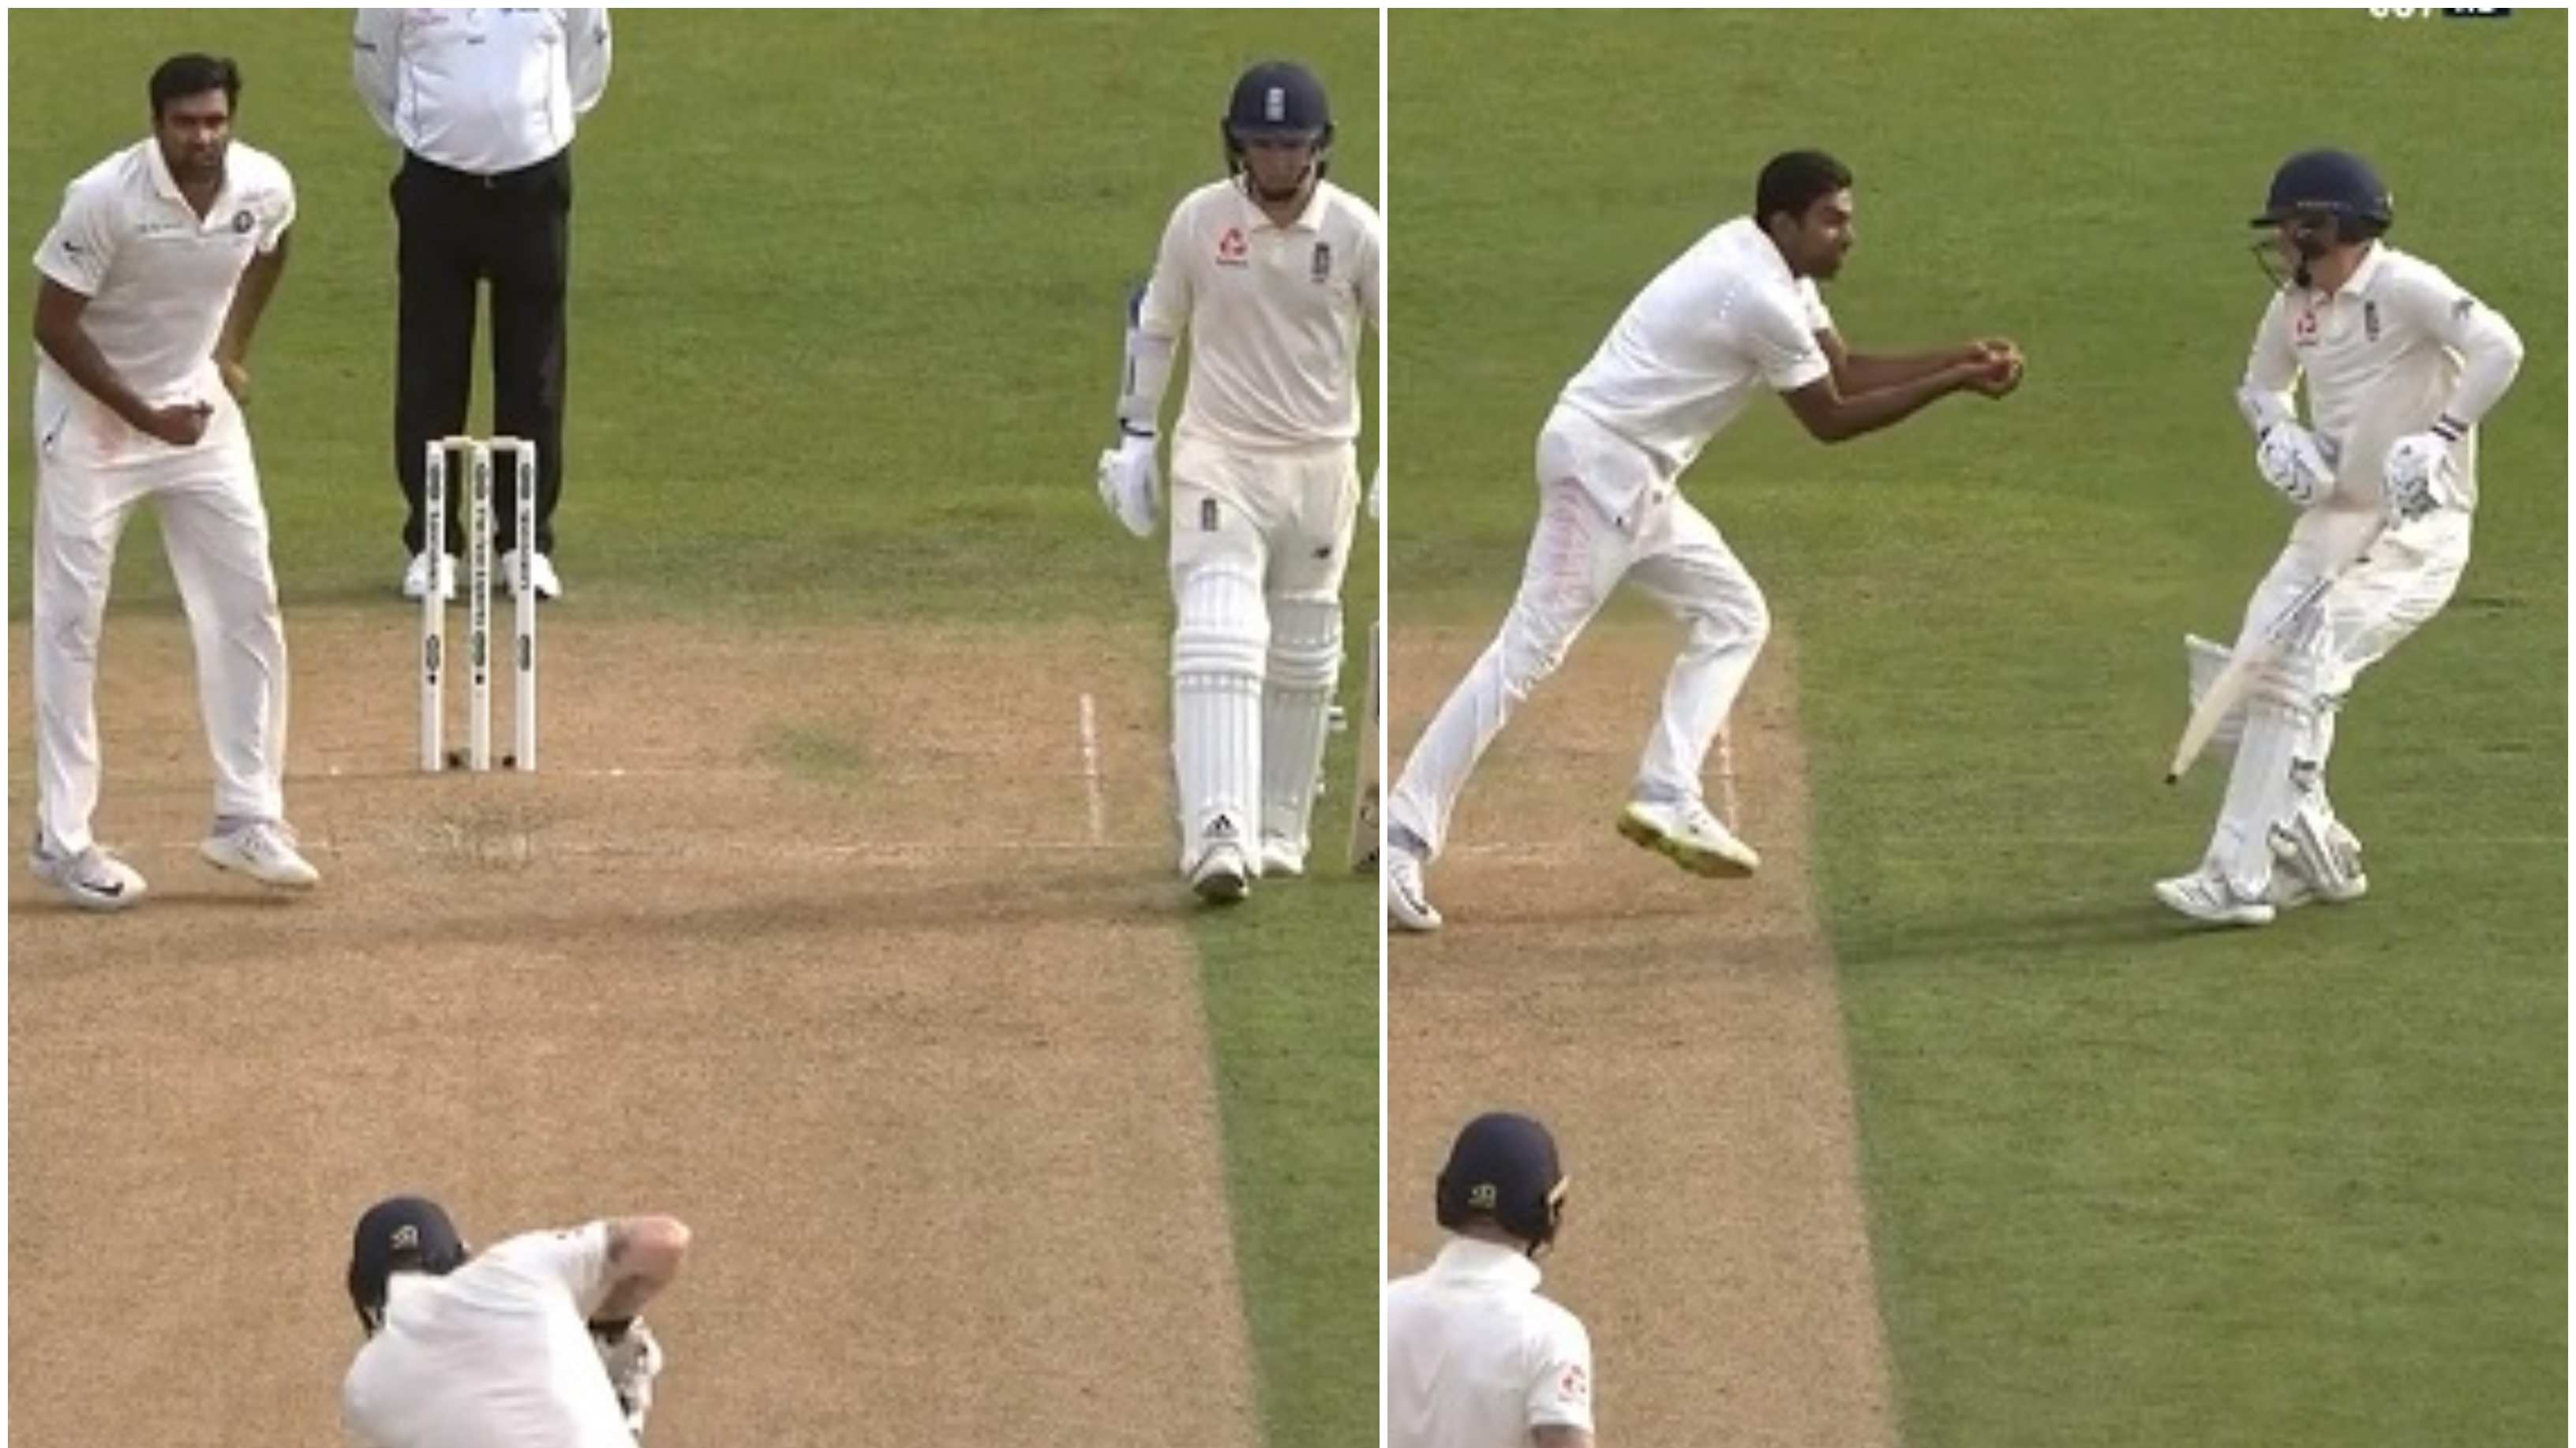 ENG v IND 2018: 1st Test – Ben Stokes' dismissal by R Ashwin courts controversy